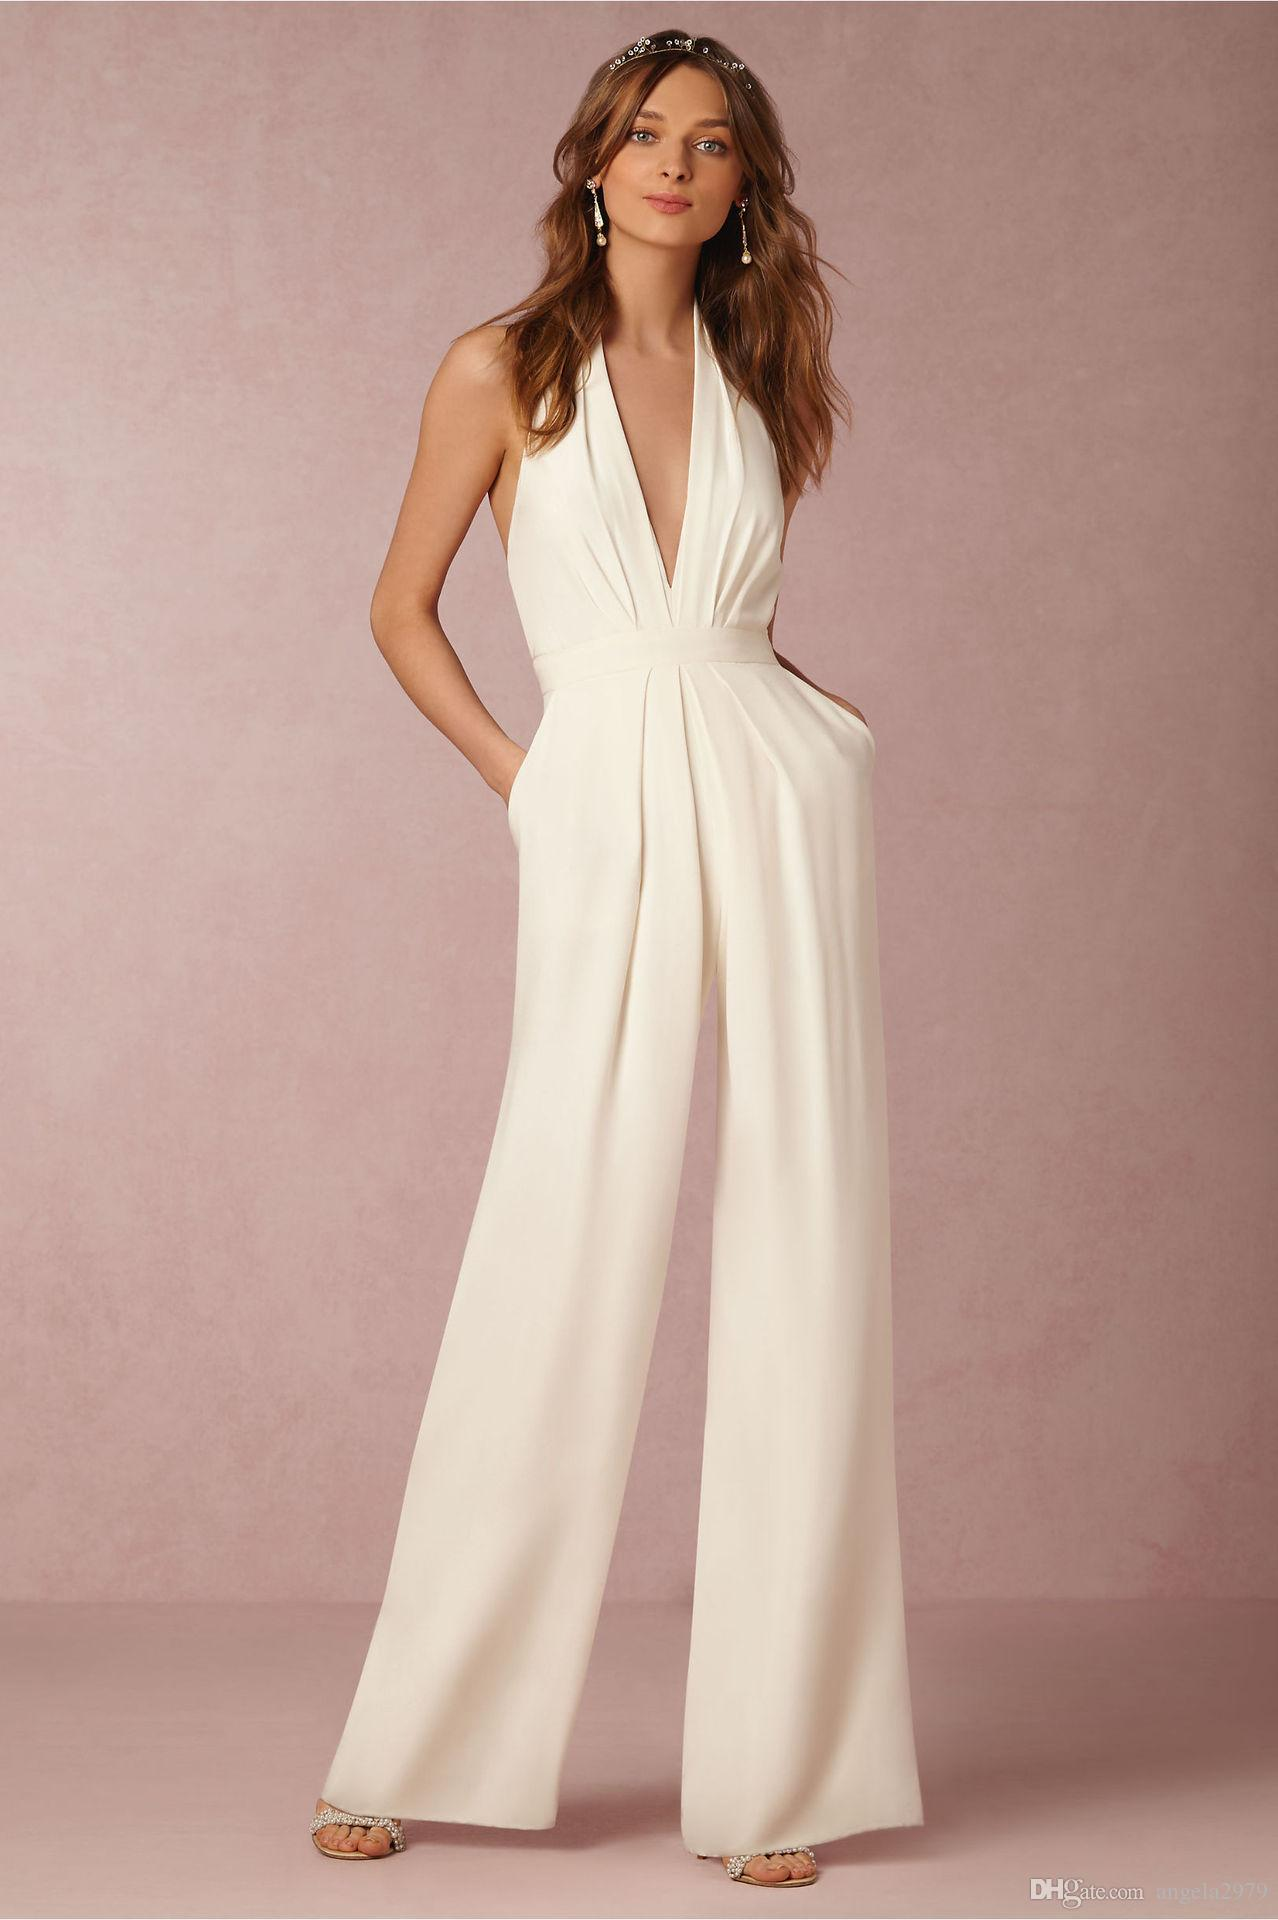 9ad58c014cbf 2019 ! Sexy Women Jumpsuits Halter V Neck Backless Women Pants Long  Jumpsuits Rompers Summer Playsuit Plus Size Wide Leg Jumpsuit B207 From  Angela2979